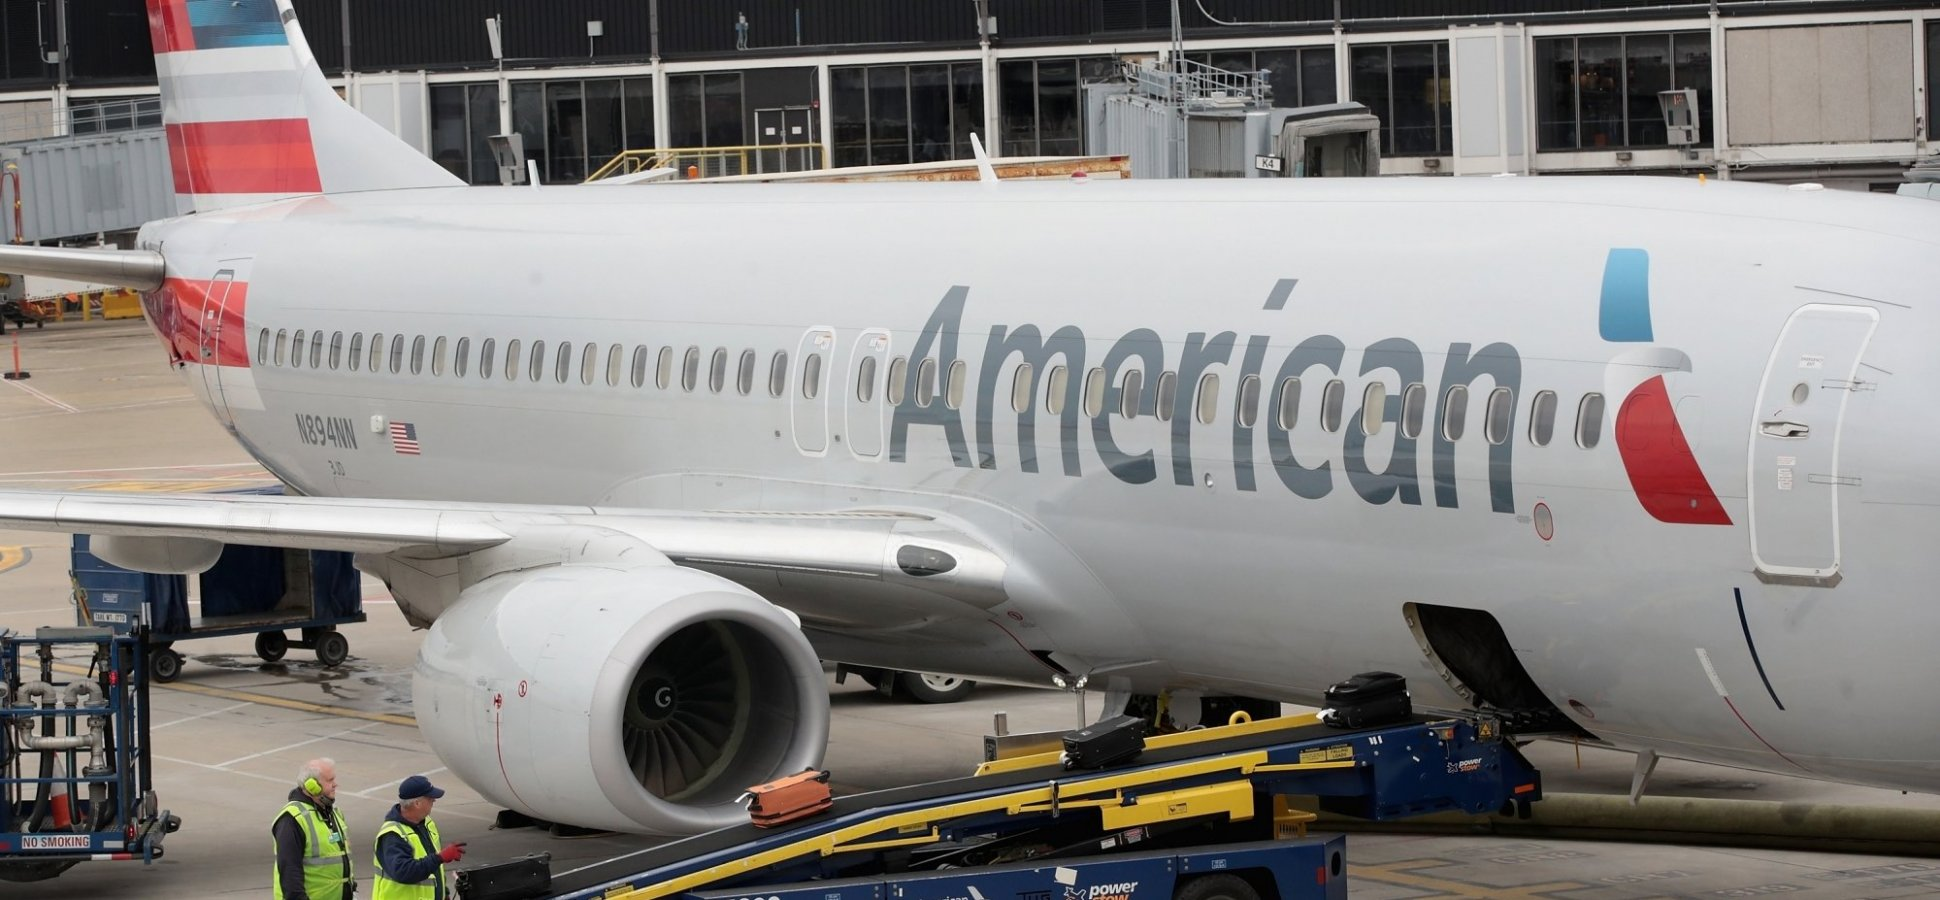 Texas family says they couldnt American Airlines flight after autistic sons meltdown